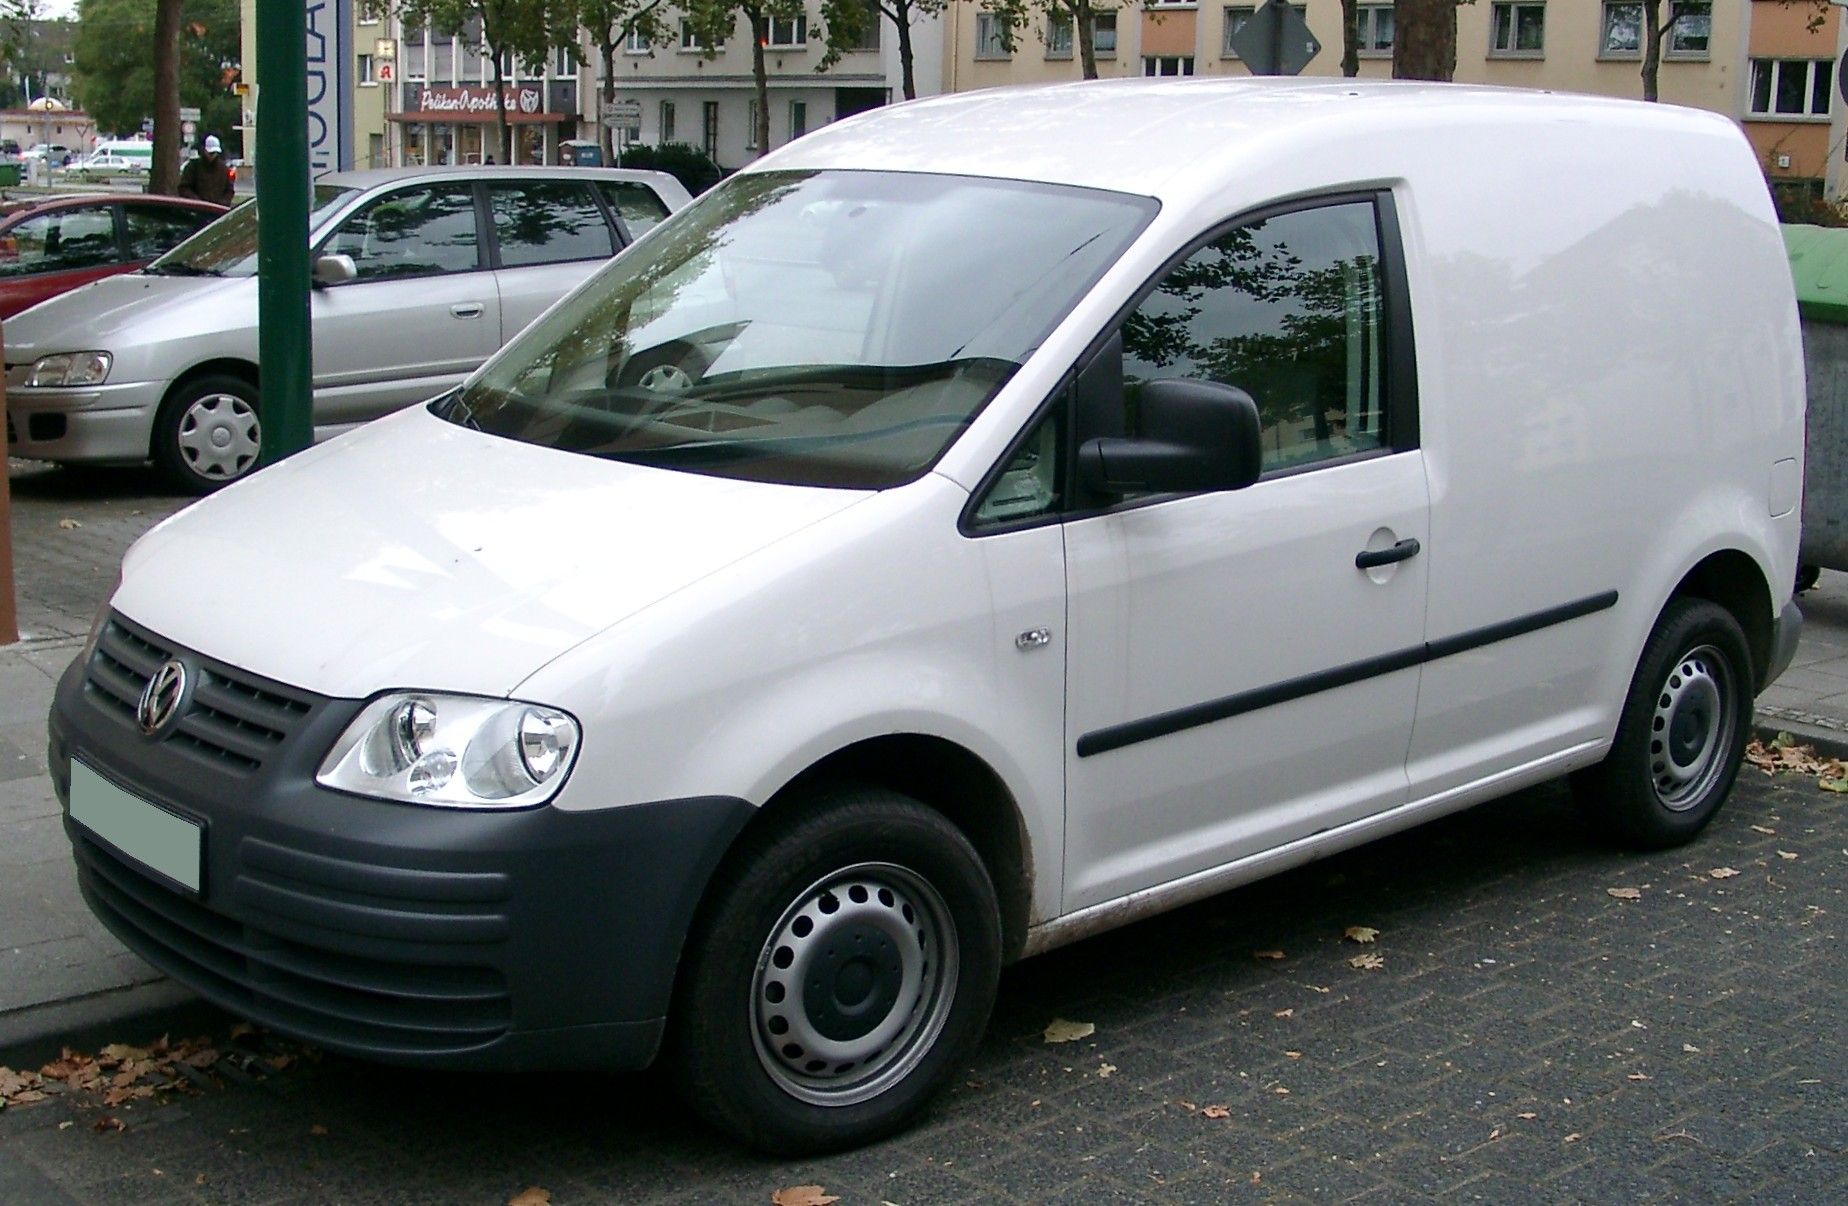 File:VW Caddy front 20071026.jpg - Wikimedia Commons